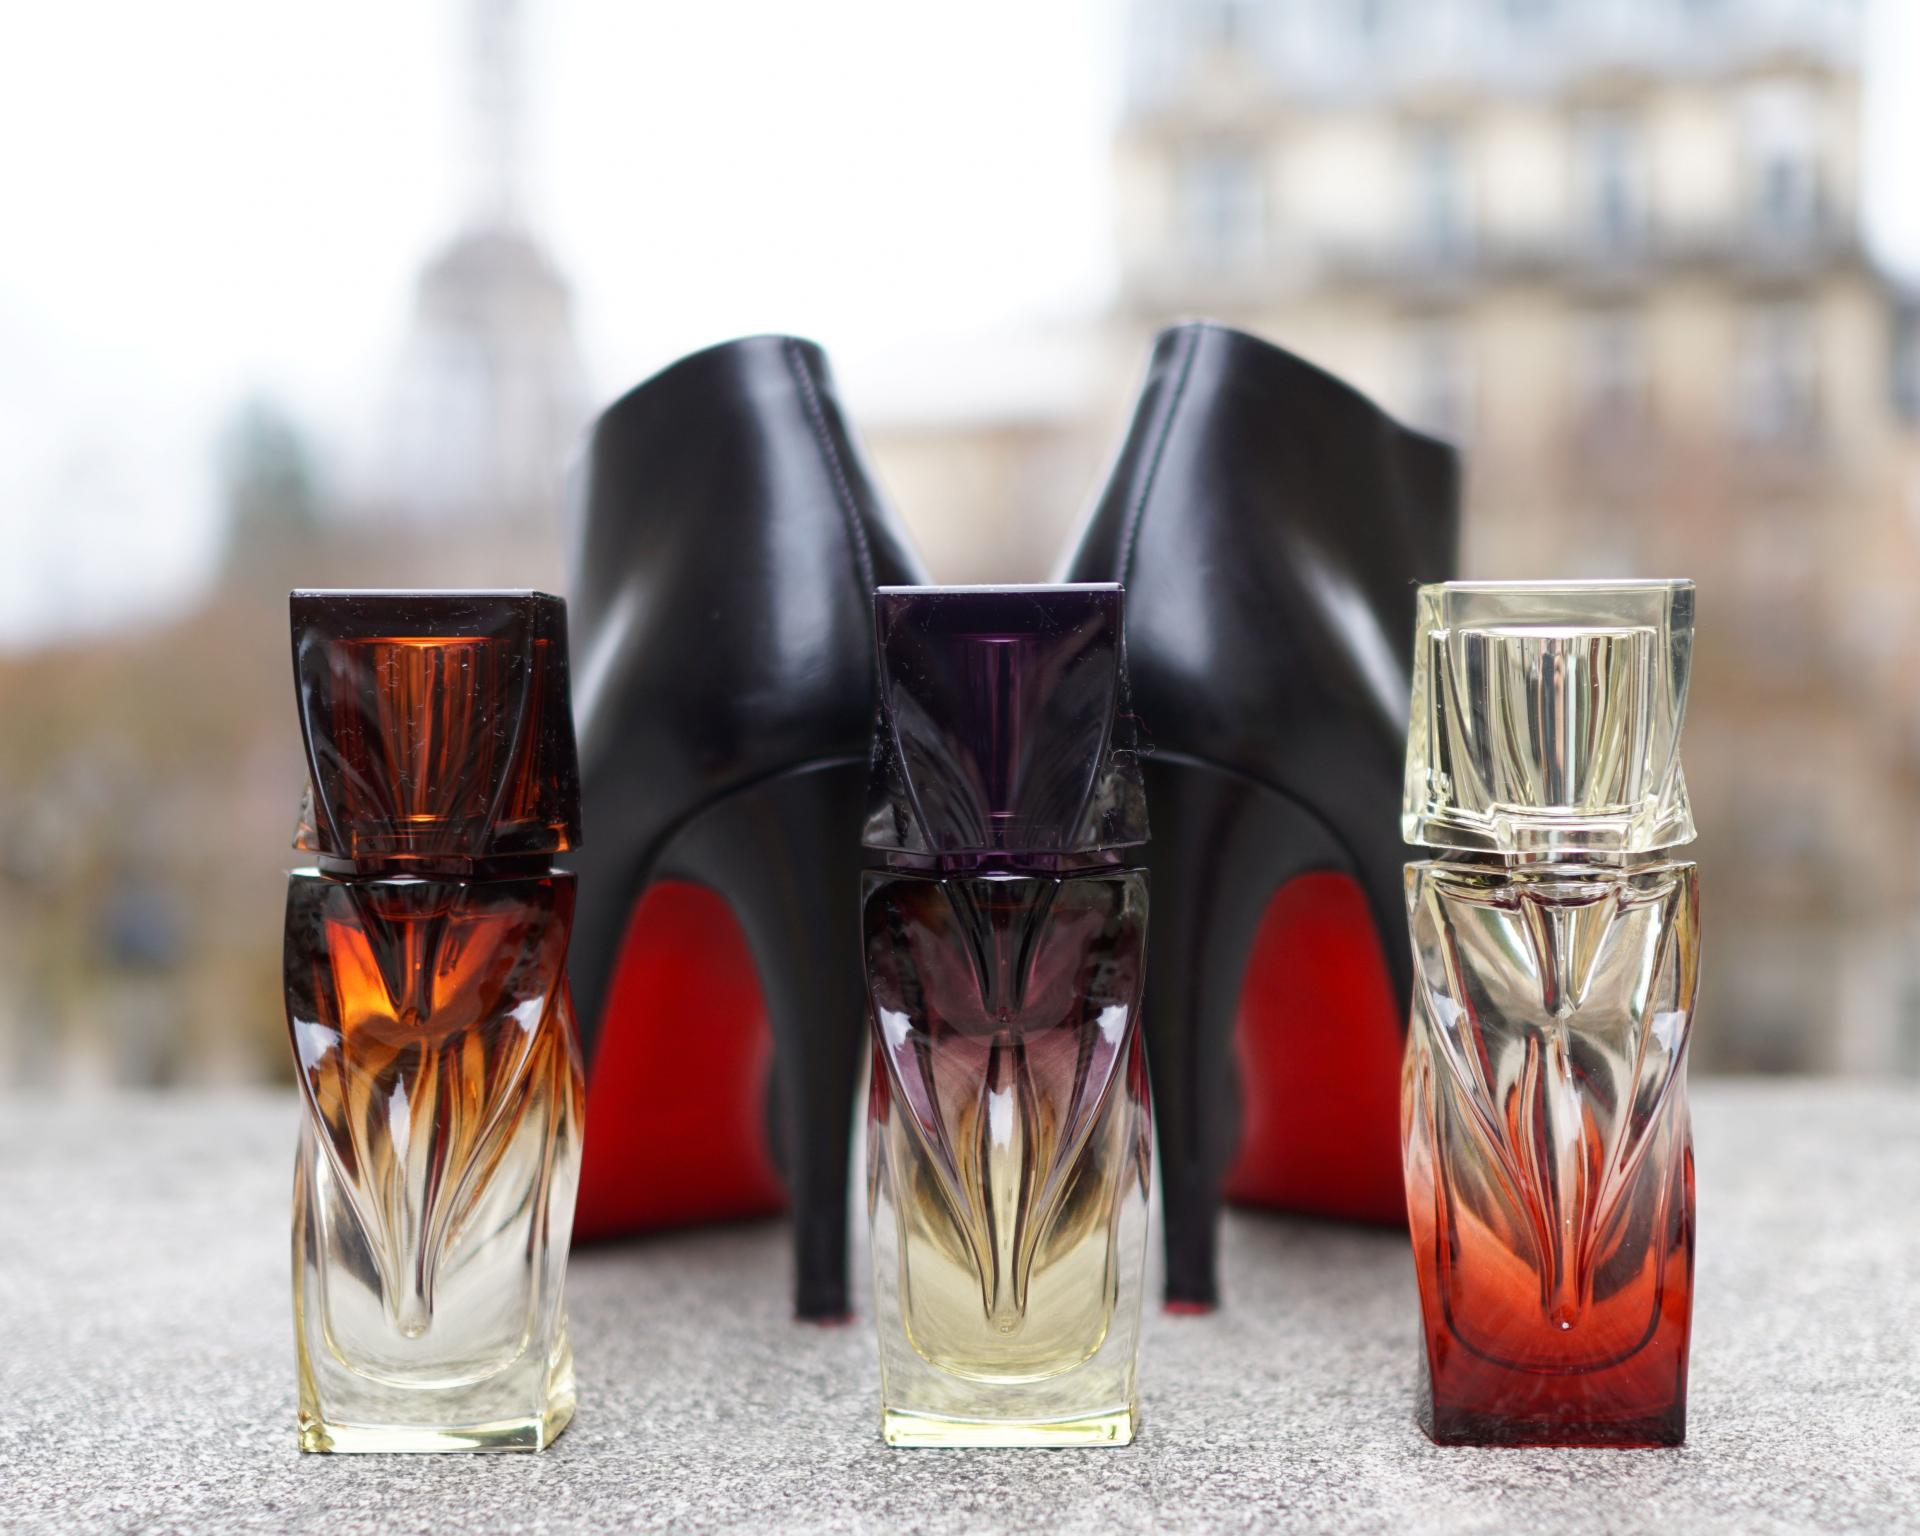 Christian Louboutins new perfume review